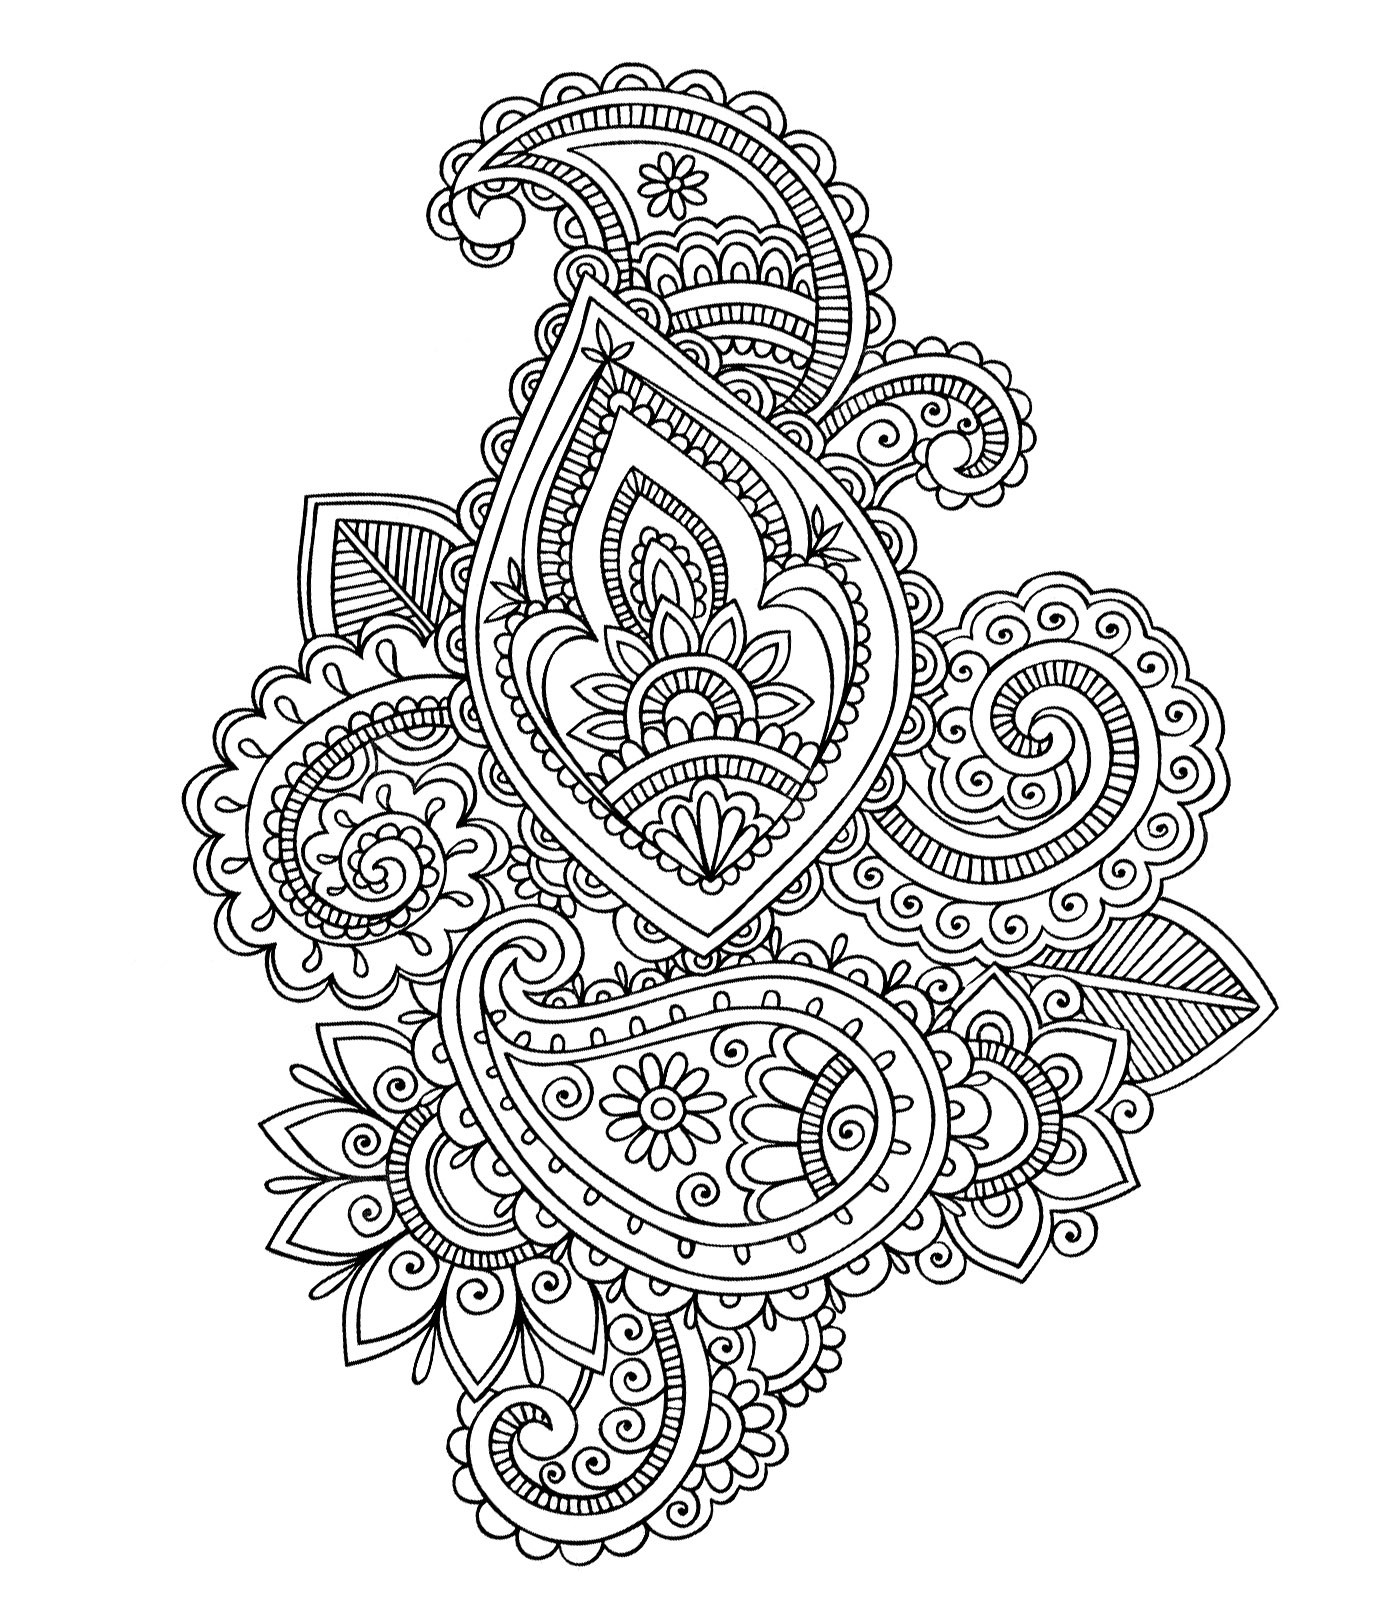 Best ideas about Free Printable Coloring Pages For Adults Hard That Are Zentangles . Save or Pin Mándalas para colorear dibujos mandalas para imprimir Now.